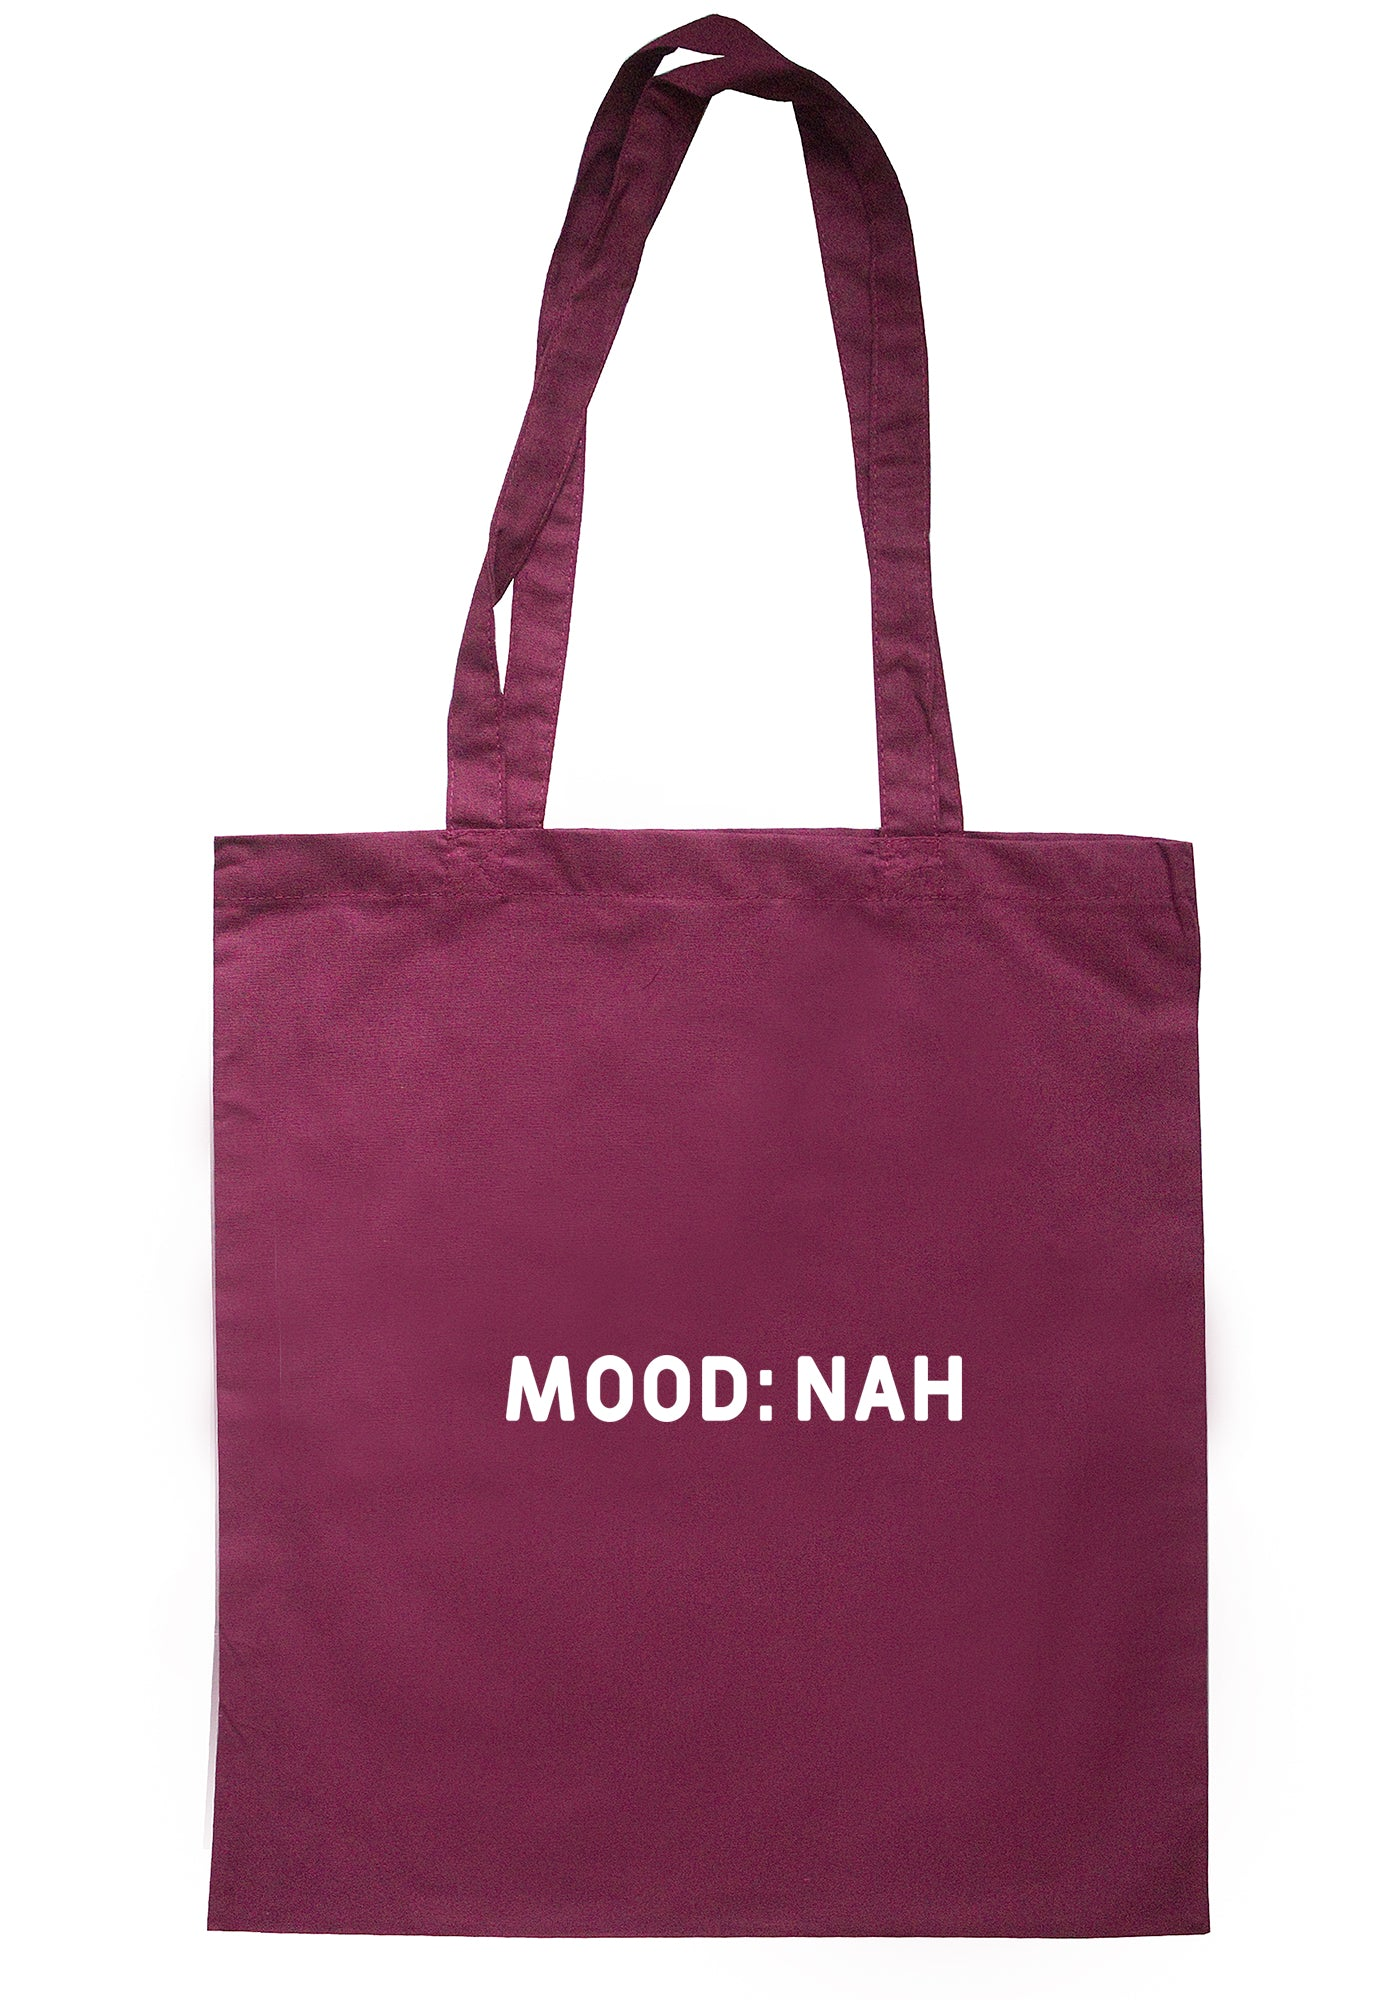 Mood: Nah Tote Bag S1031 - Illustrated Identity Ltd.